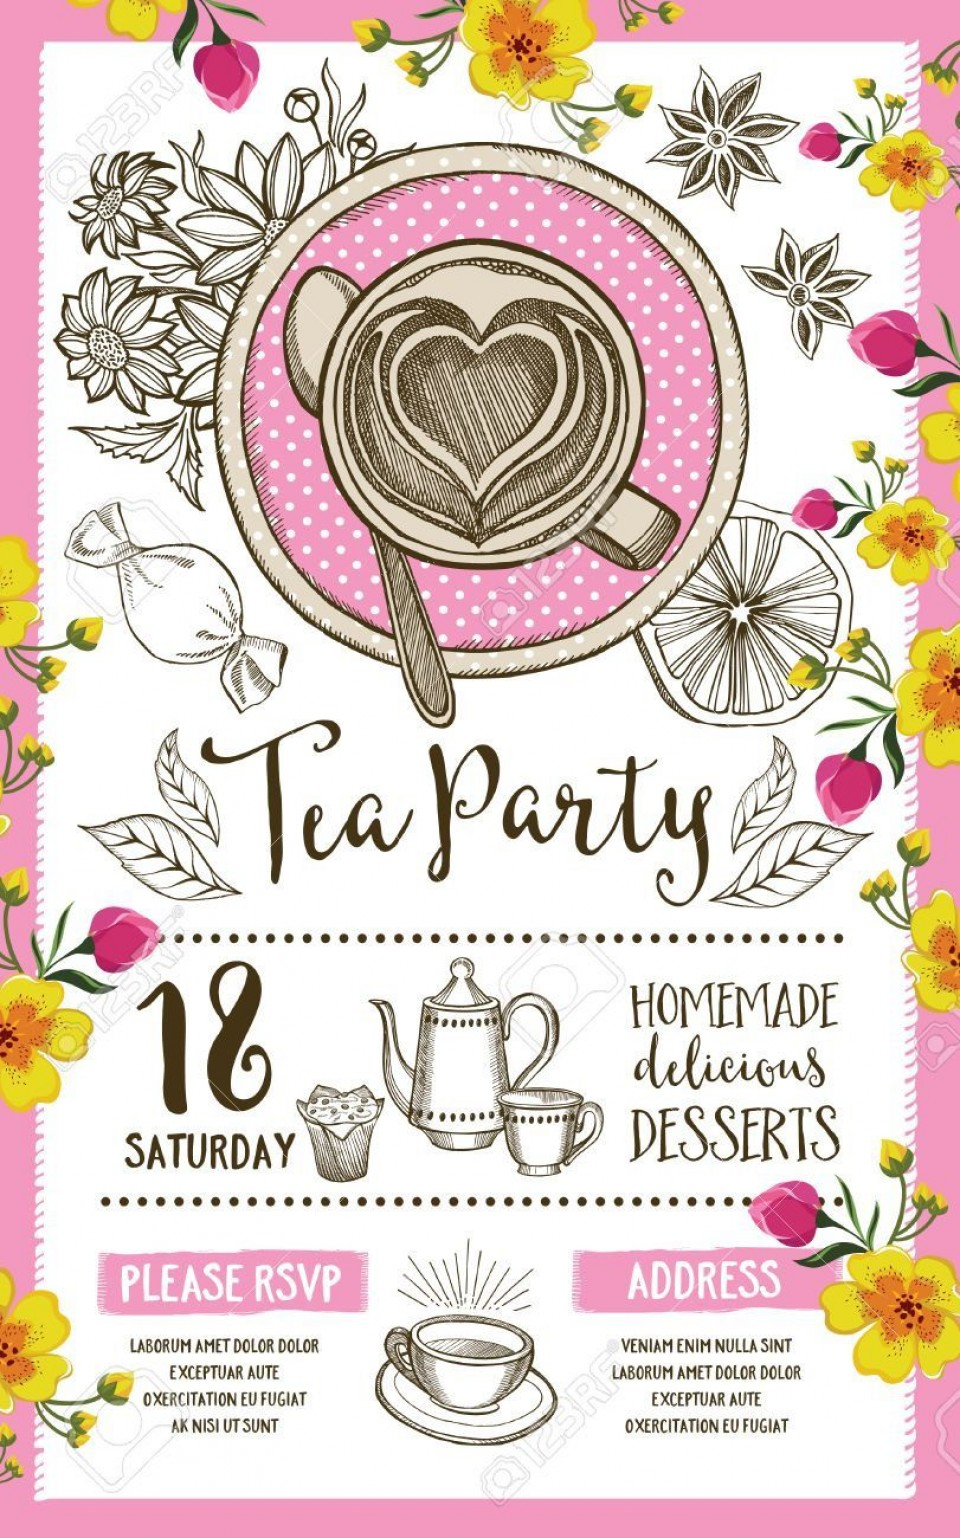 004 Wonderful Tea Party Invitation Template Inspiration  Vintage Free Editable Card Pdf960